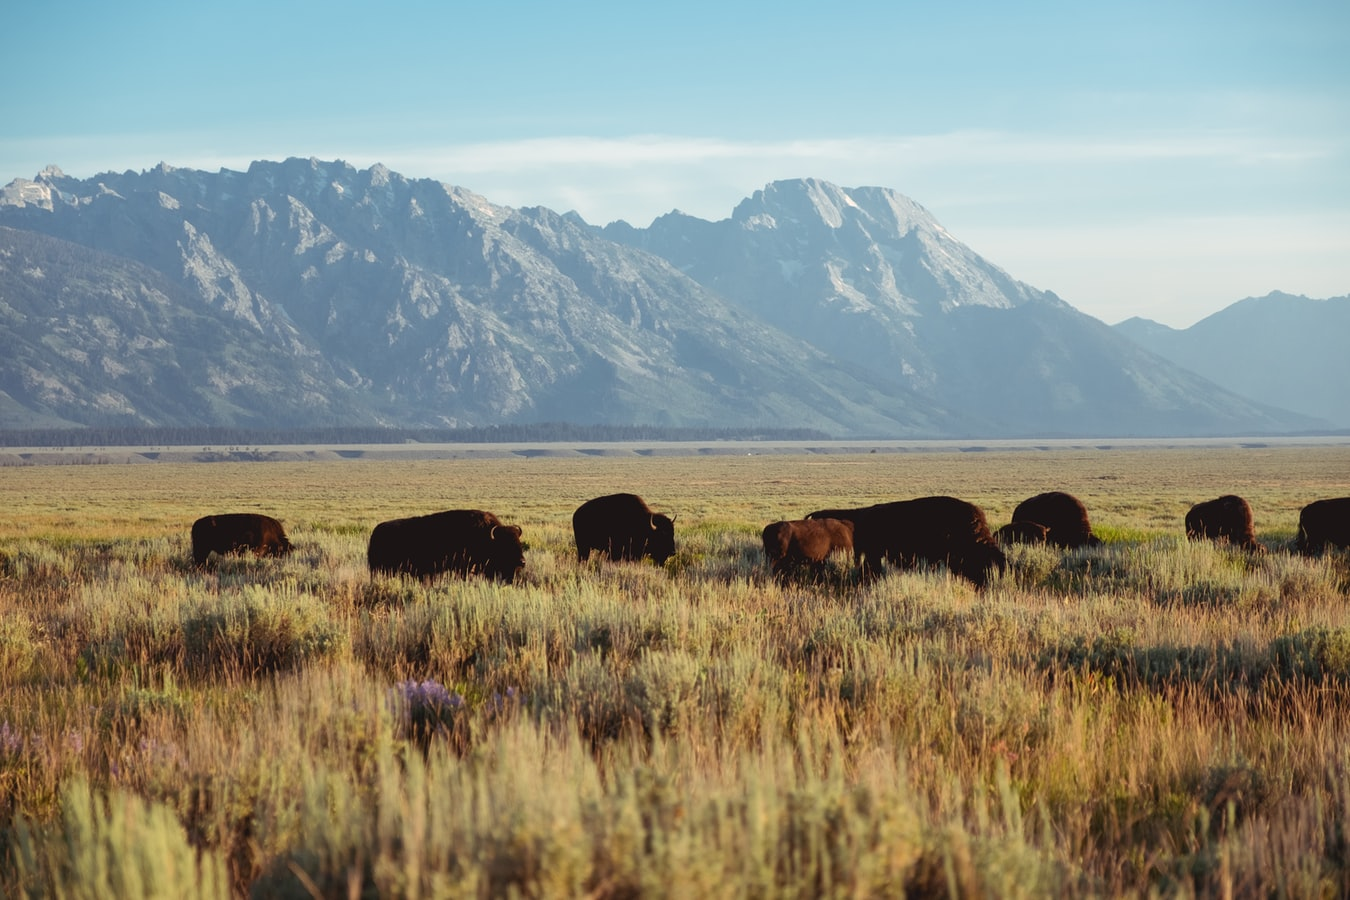 Conserving Wild Bison: Finding Space for an American Icon